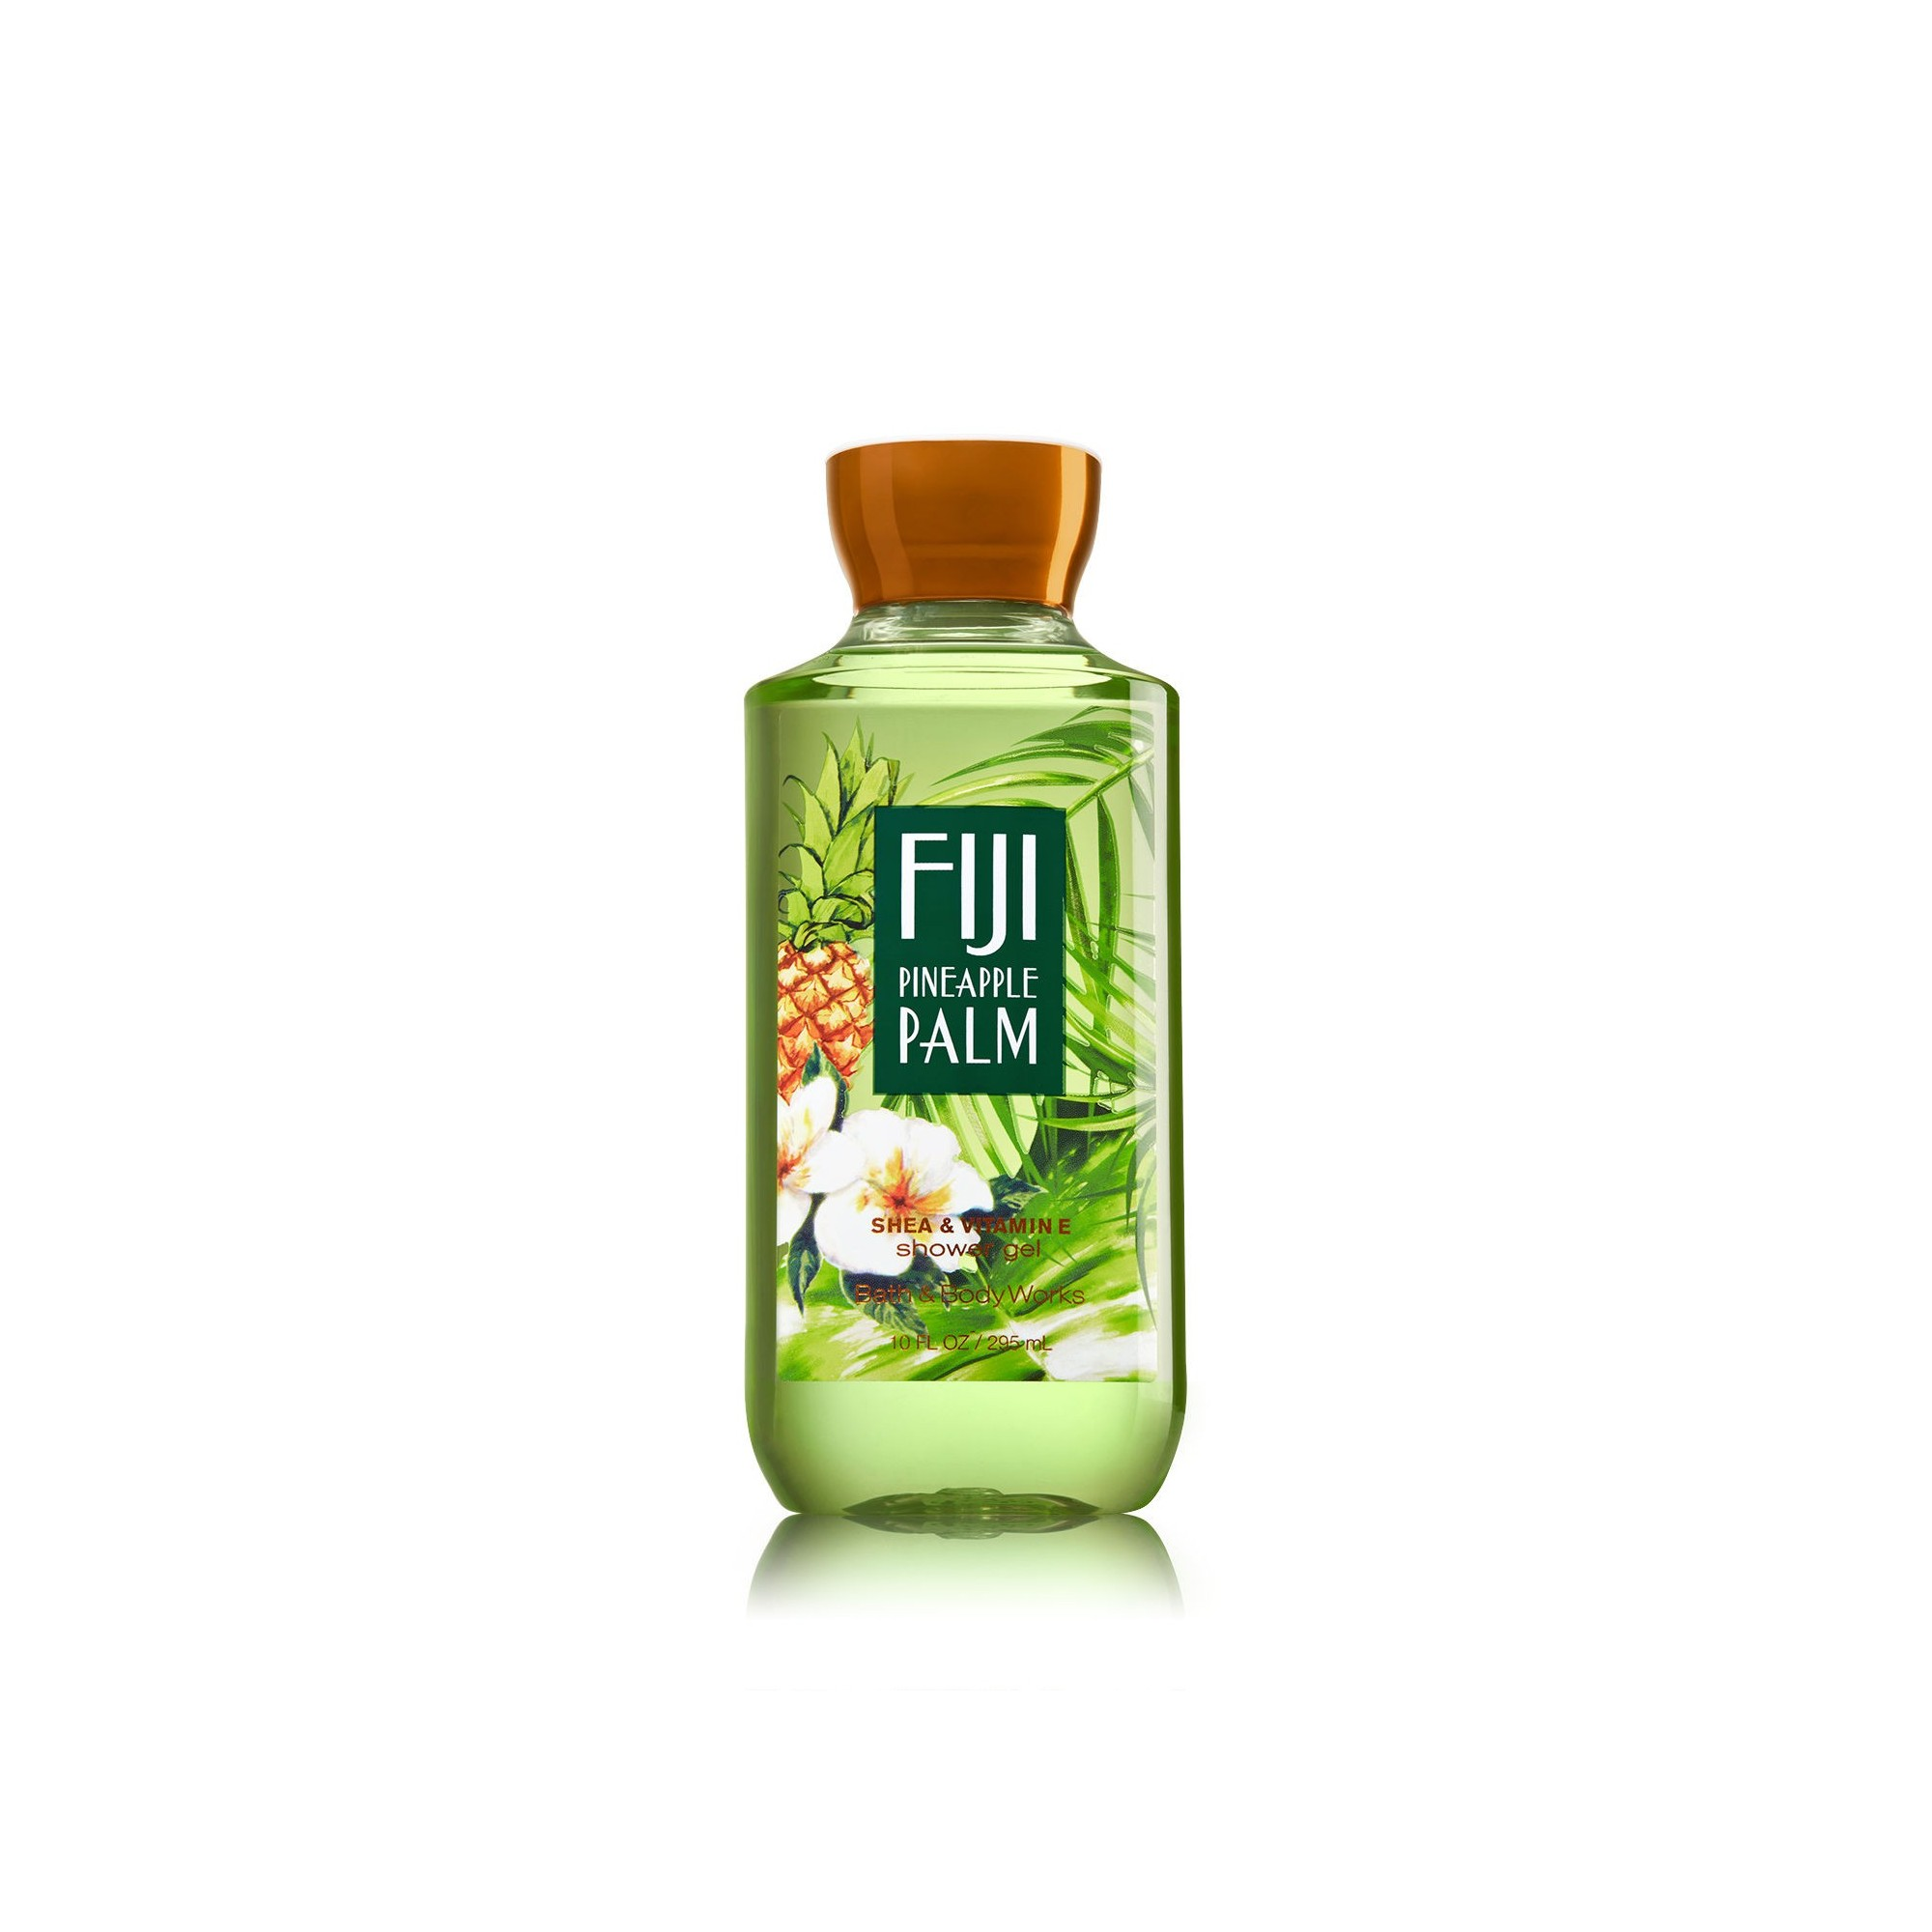 Bath & Body Works Fiji Pineapple Palm Shower Gel